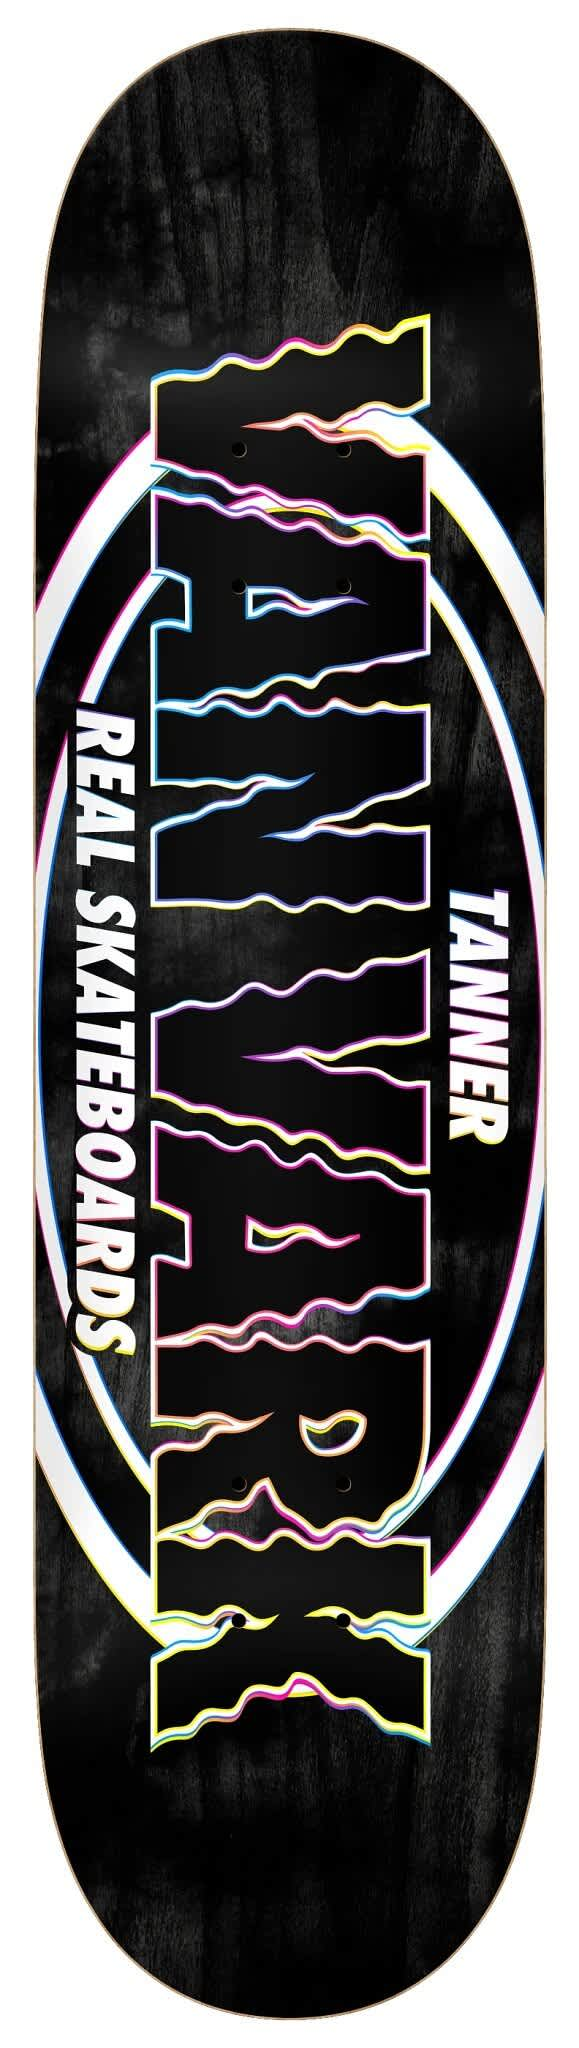 REAL Tanner Pro Oval Deck 8.38   Deck by Real Skateboards 1